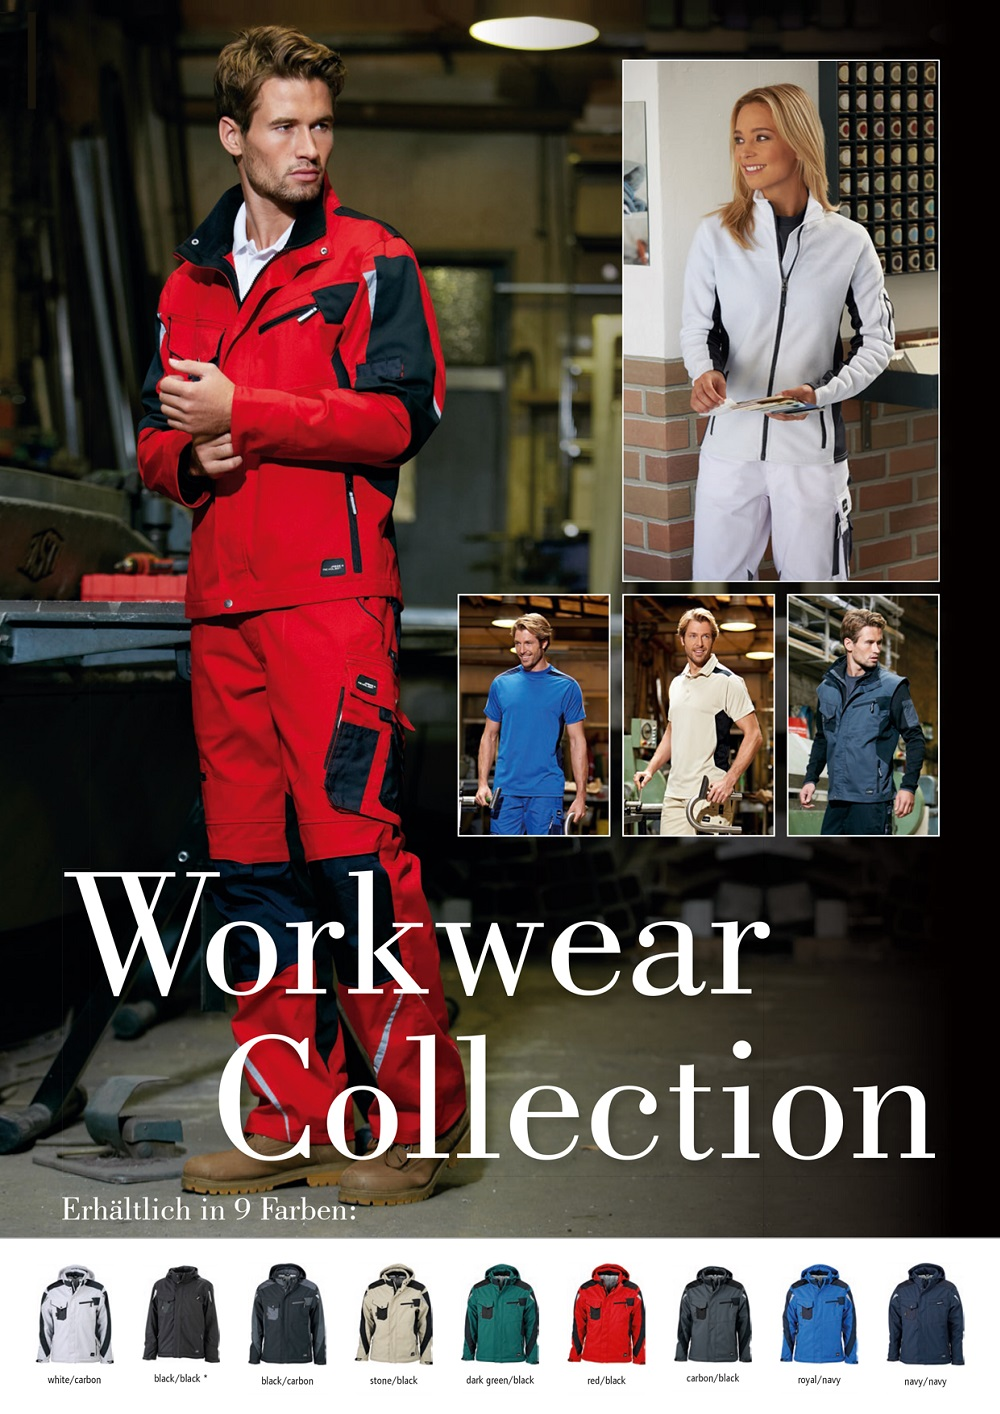 workwear collection 2018 logo